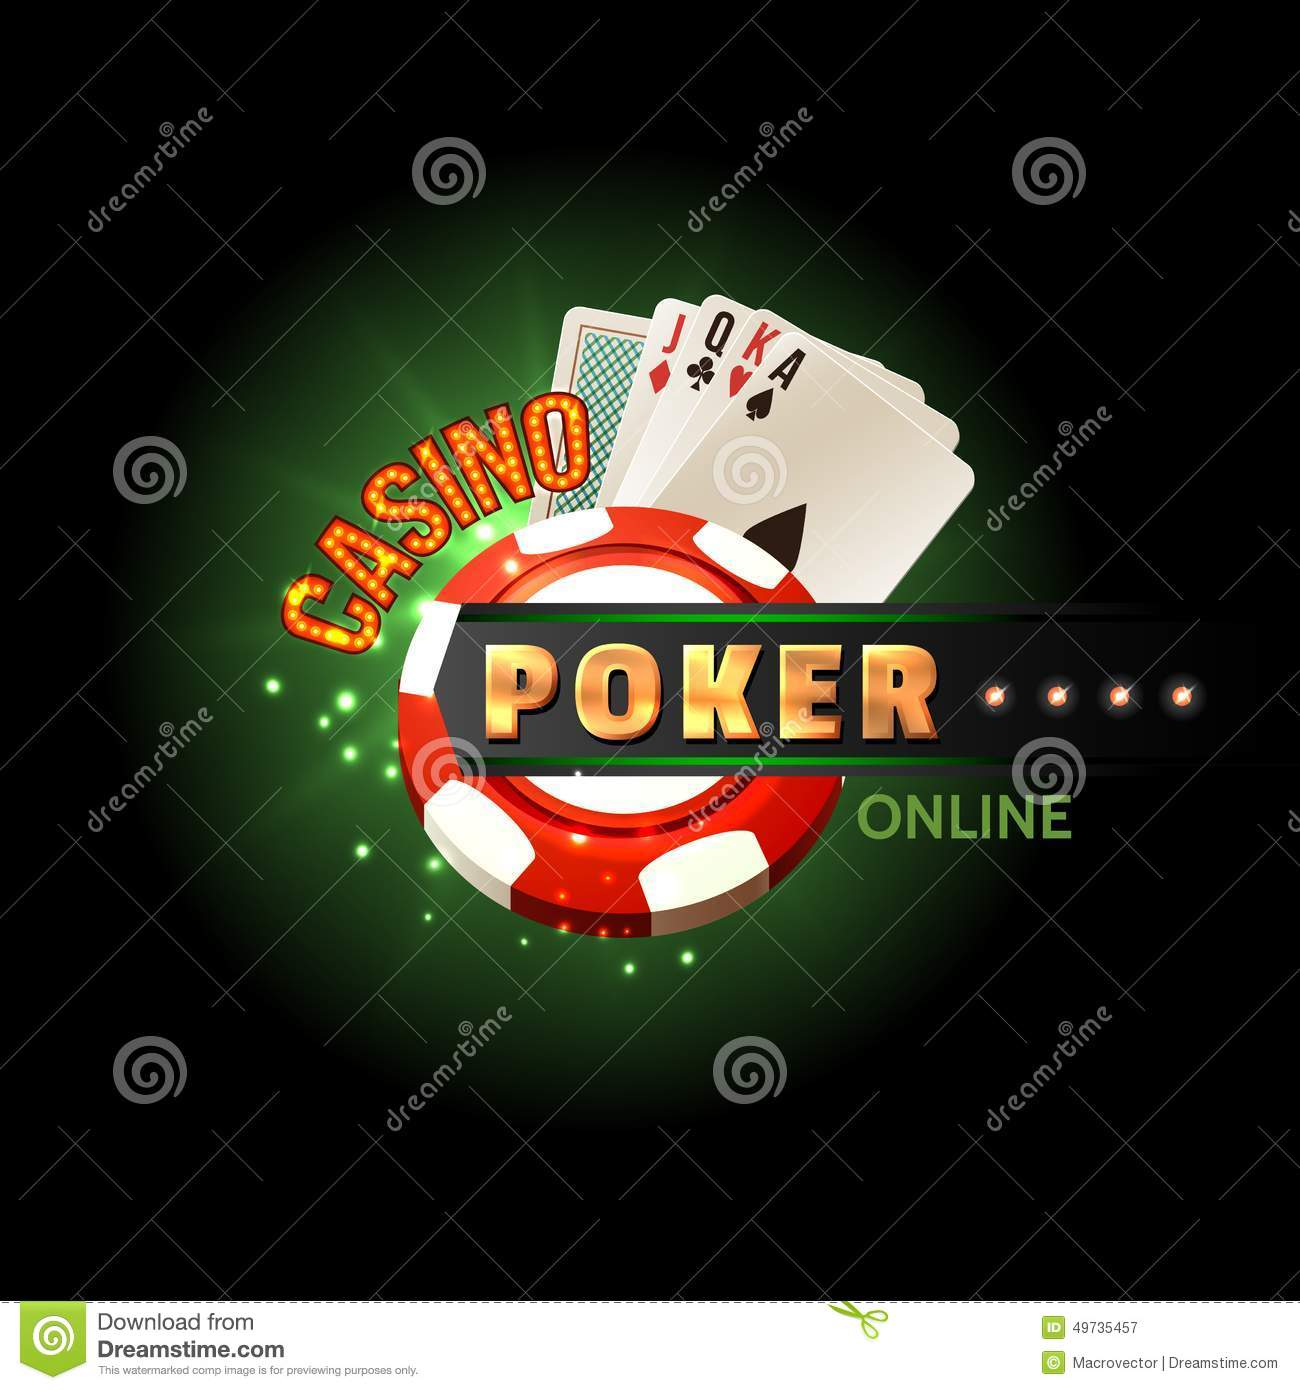 casino-poker-online-poster-traditional-cards-set-safe-gambling-getting-cash-money-internet-design-vector-illustration-49735457.jpg